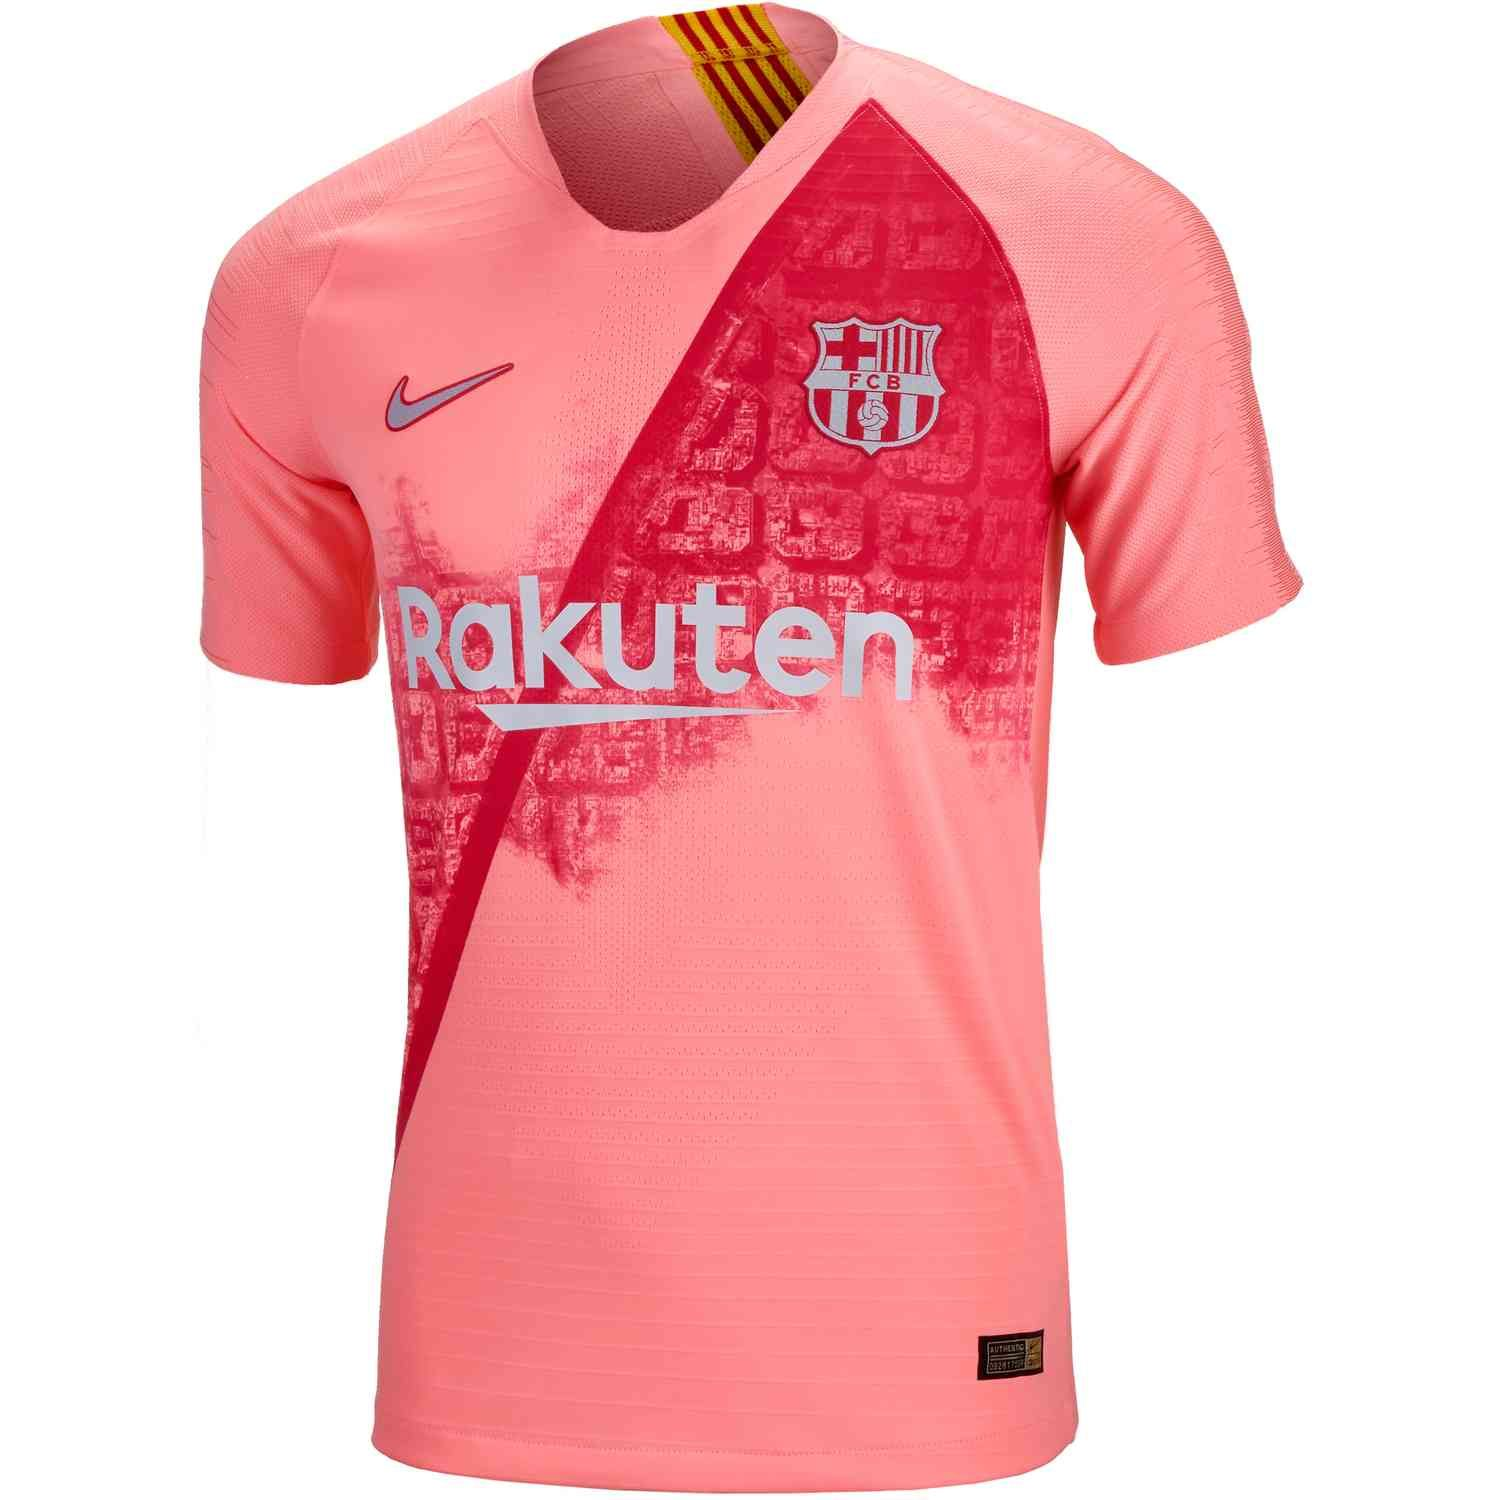 2843d8efa3 2018 19 Nike FC Barcelona 3rd Match Jersey. Buy it from www.soccerpro